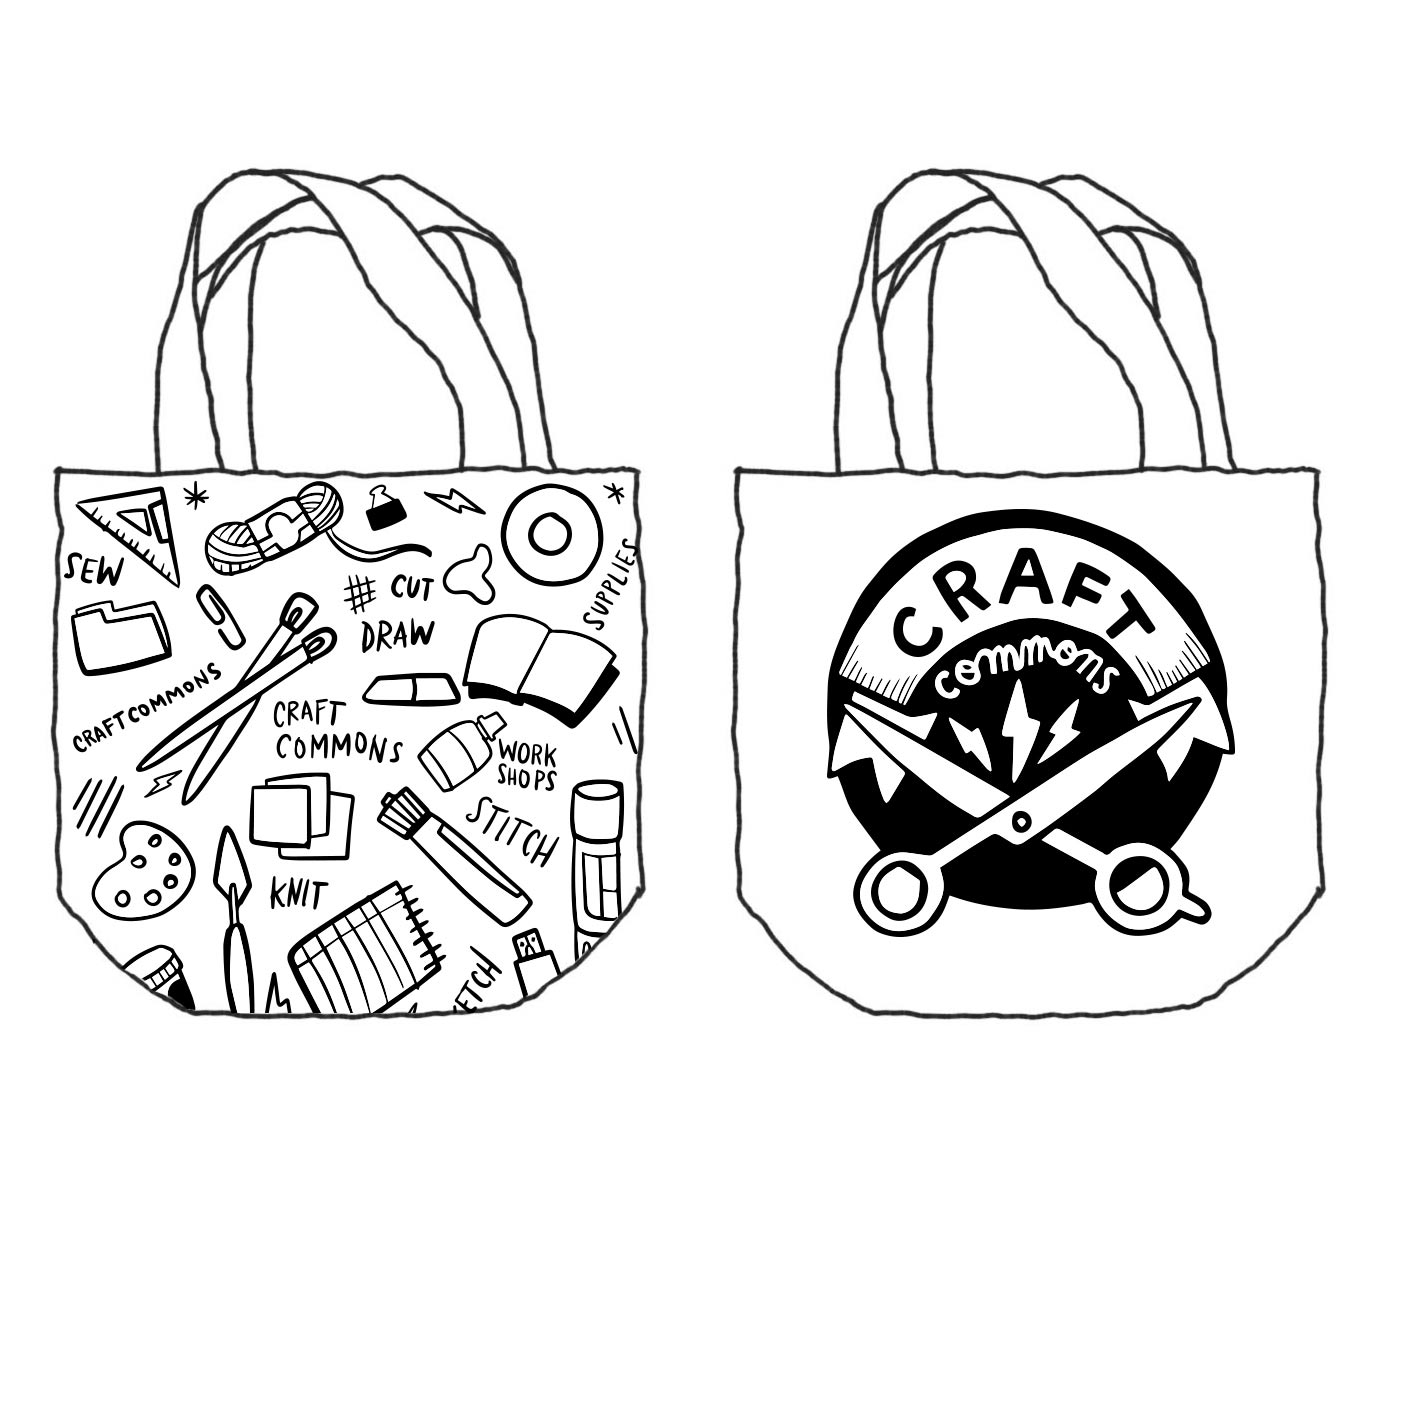 Illustrated mockup a tote bag for Craft Commons